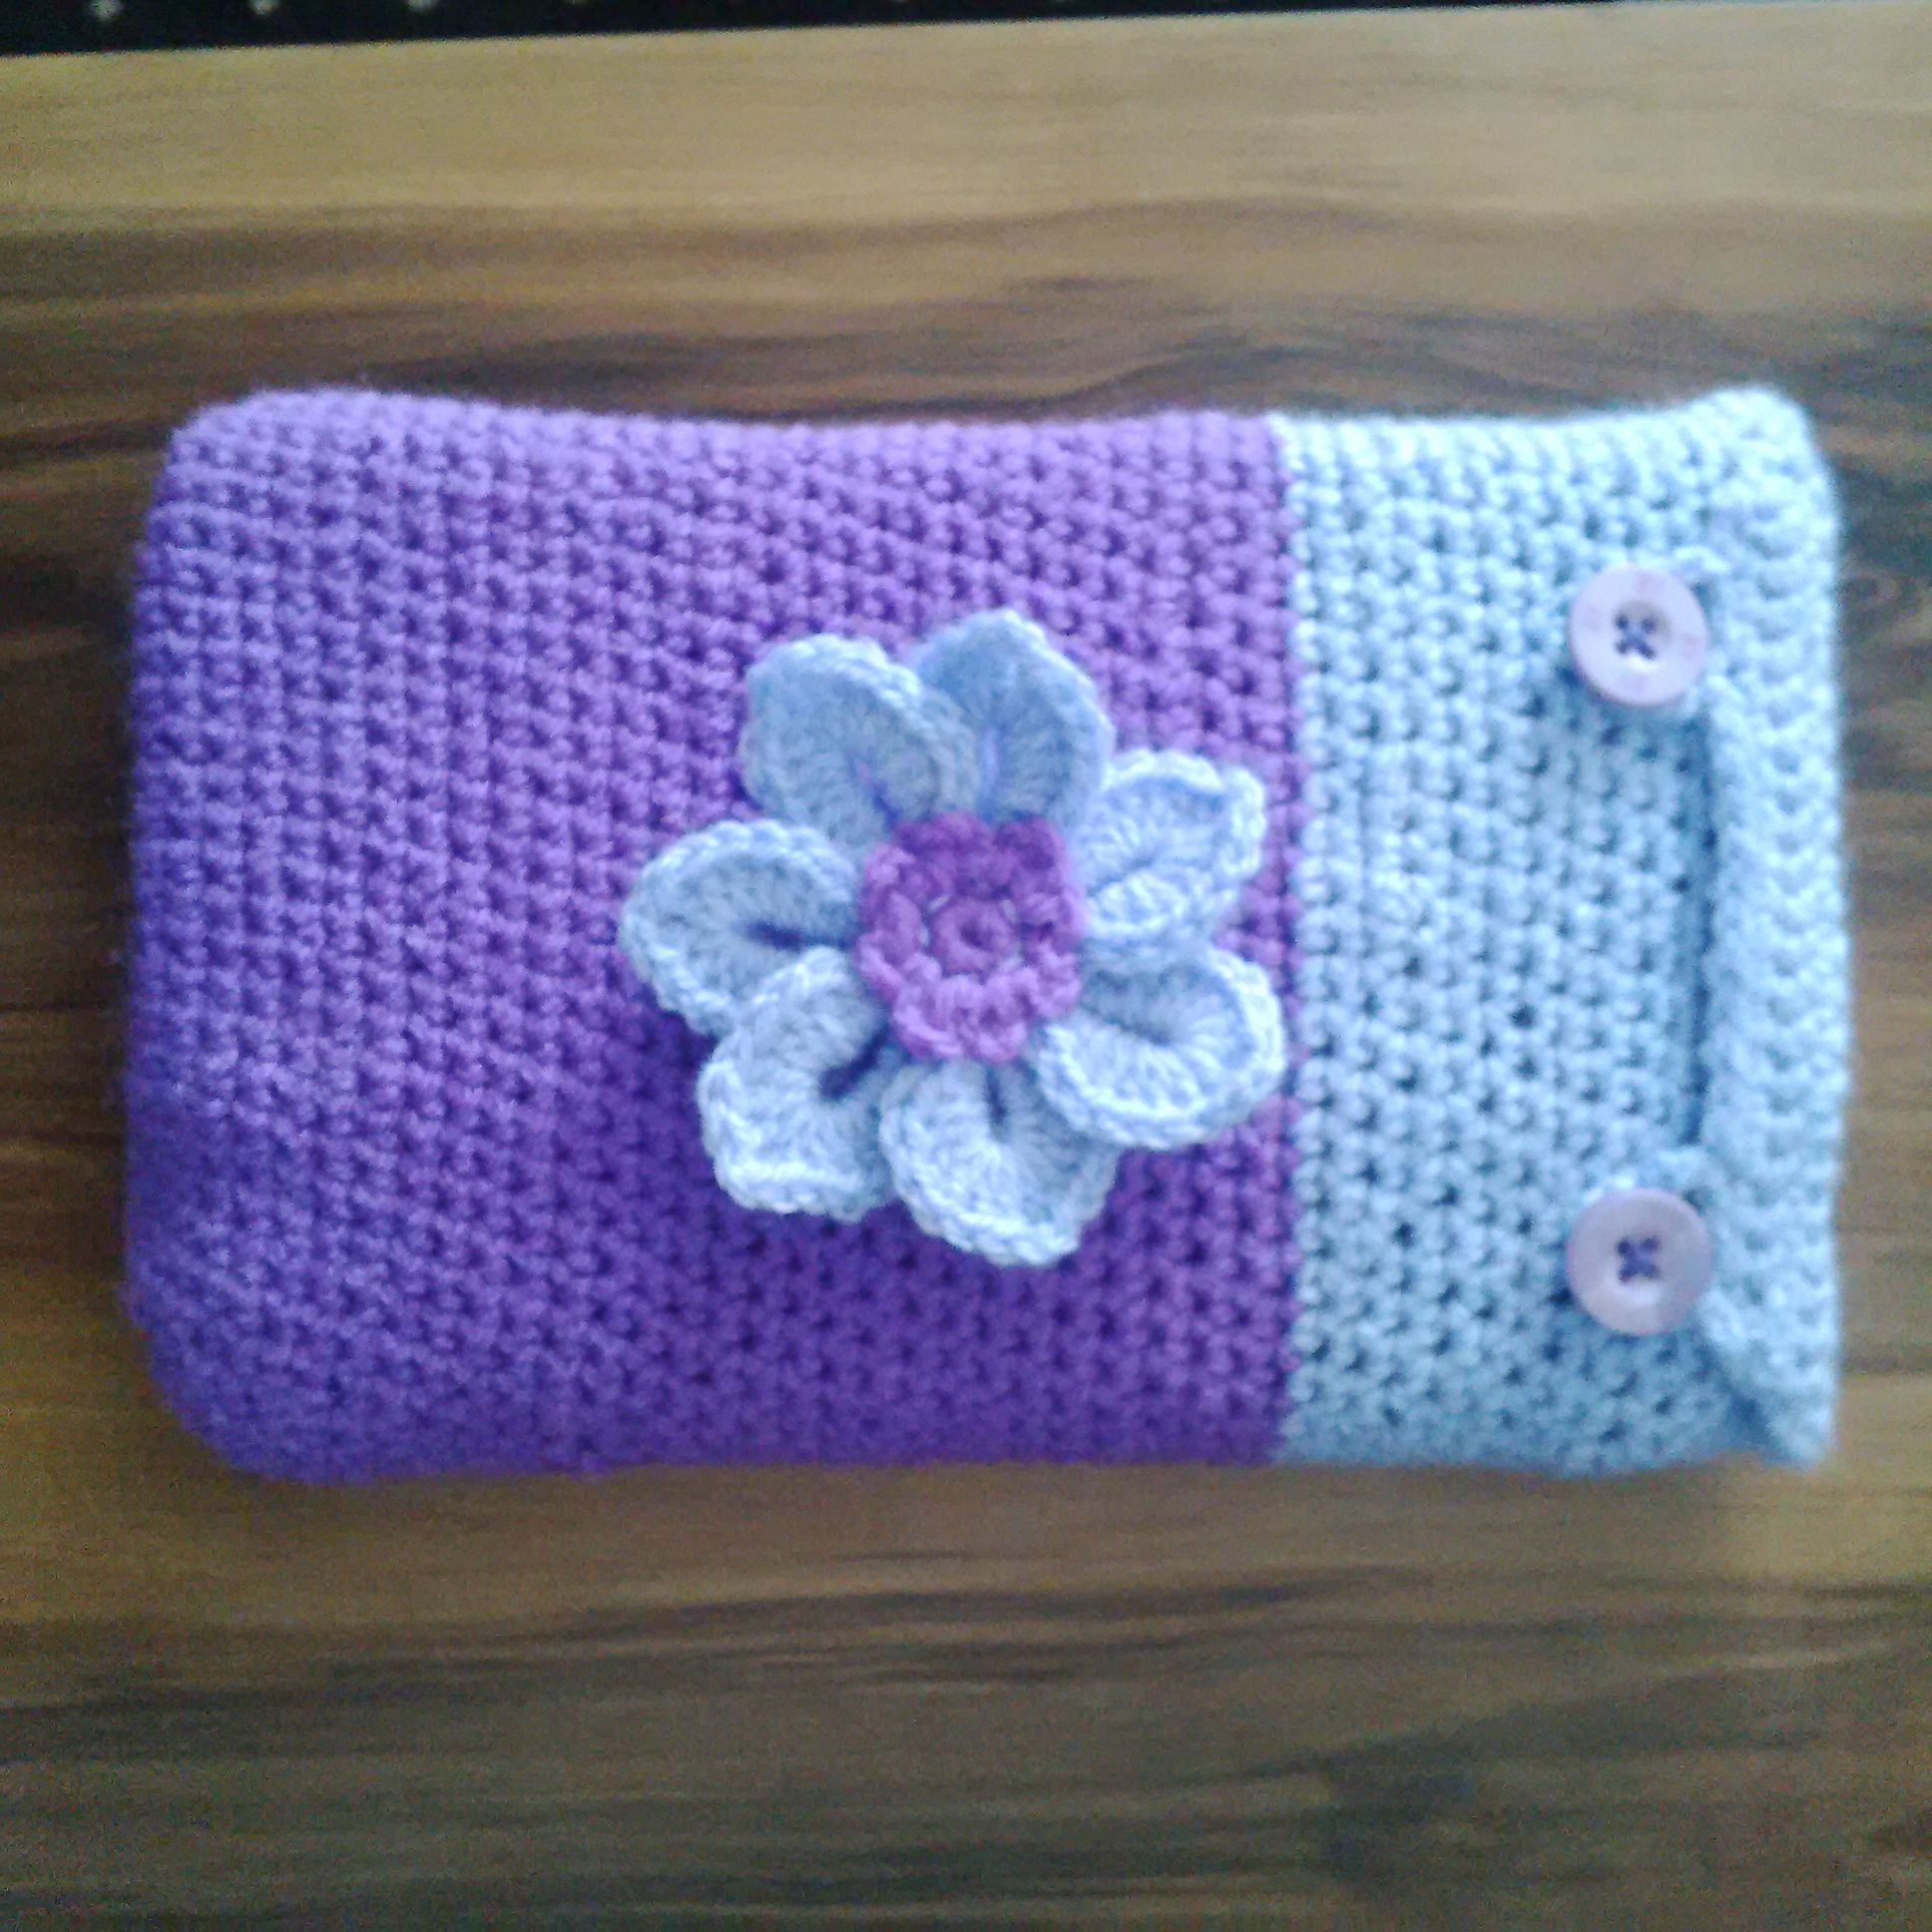 New Another Crochet Tablet Cover Thing to Do Crochet Tablet Cover Of Delightful 46 Ideas Crochet Tablet Cover